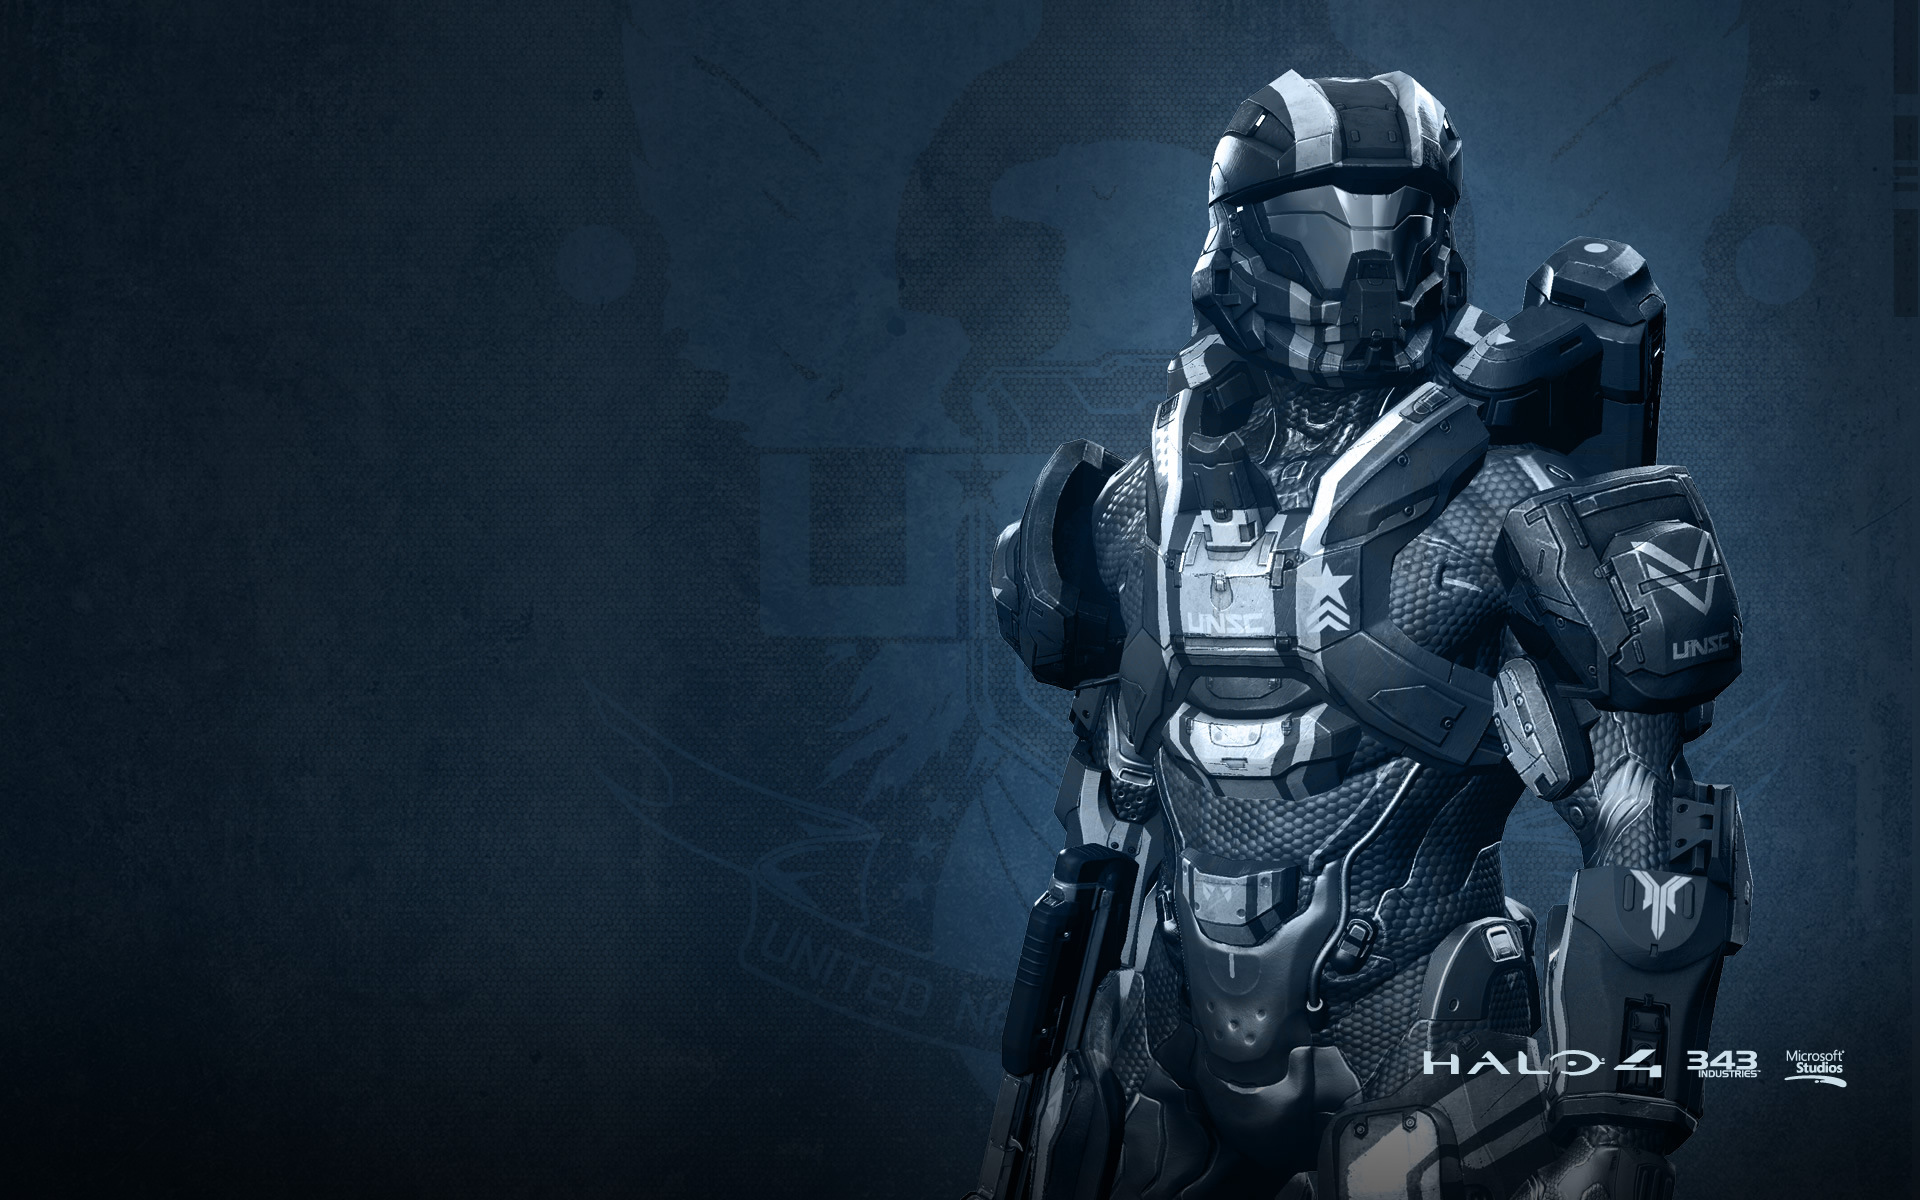 halo 4 spartan ops matchmaking Overview halo 4 contains the standard modes included in modern halo games, including a campaign, online multiplayer (matchmaking and custom games), forge and theater it also includes a new game mode called spartan ops gameplay halo 4 brought many gameplay changes to the classic halo formula.